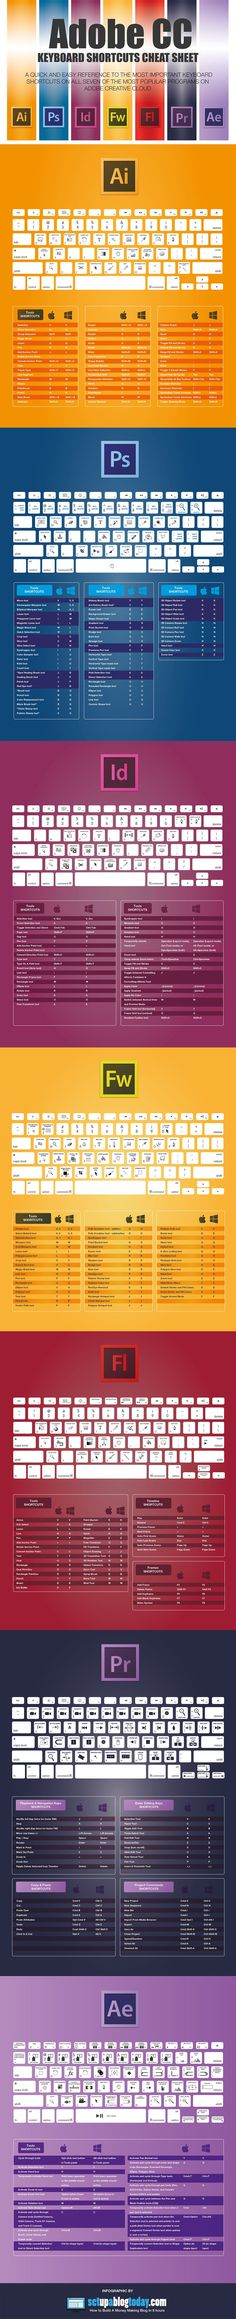 the-ultimate-adobe-creative-cloud-cheat-sheet-for-diy-designers2-1.jpg